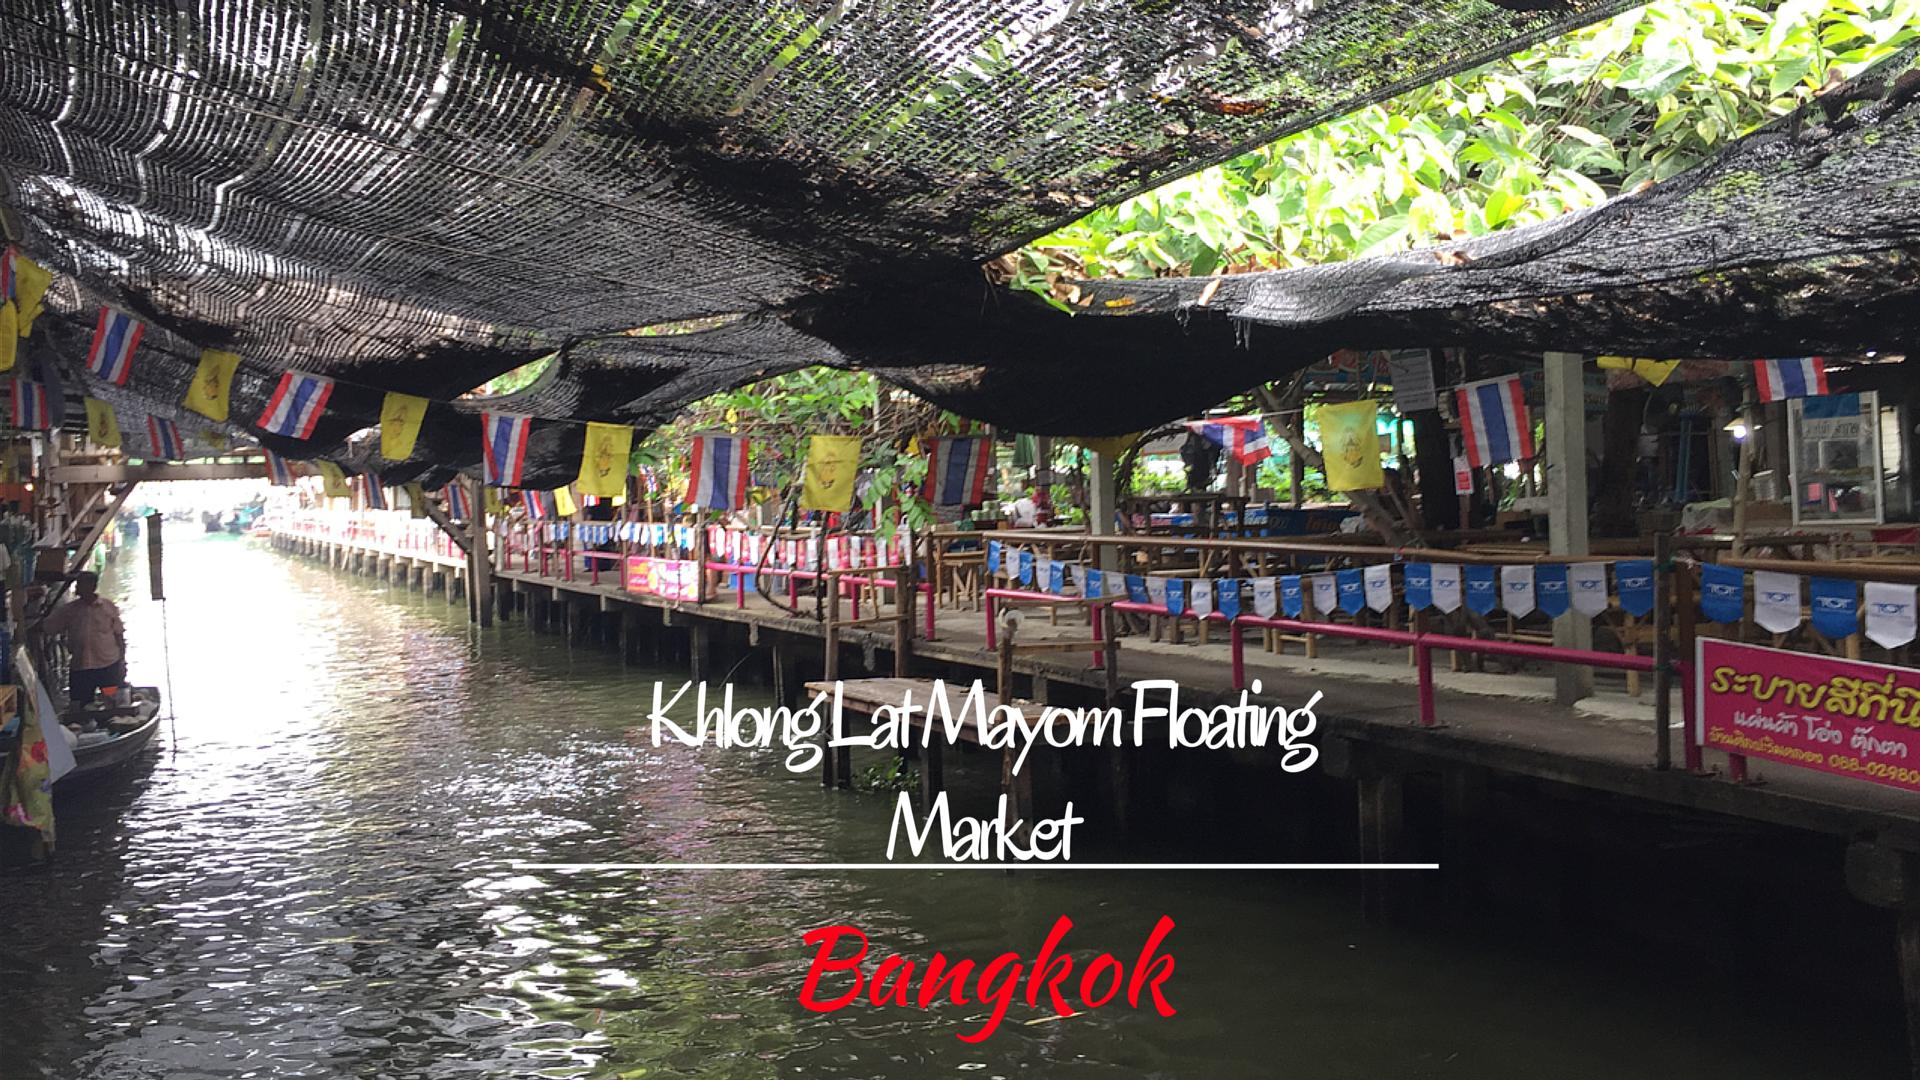 A Food trail in Bangkok : The floating market of Khlong Lat Mayom